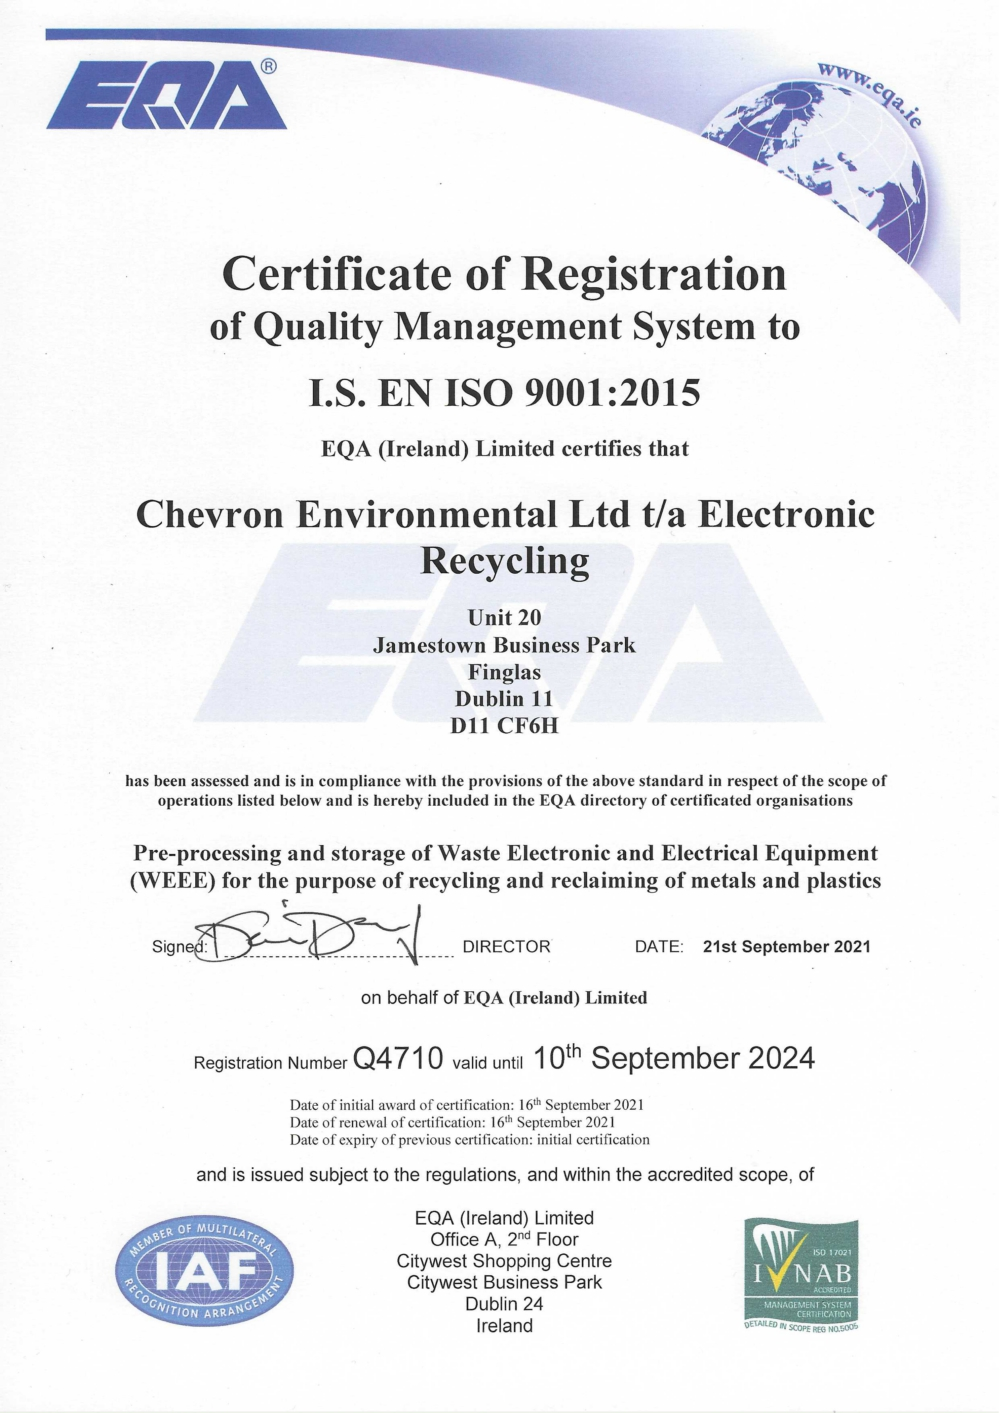 iso-9001-2015-certificate-10-09-2021-2